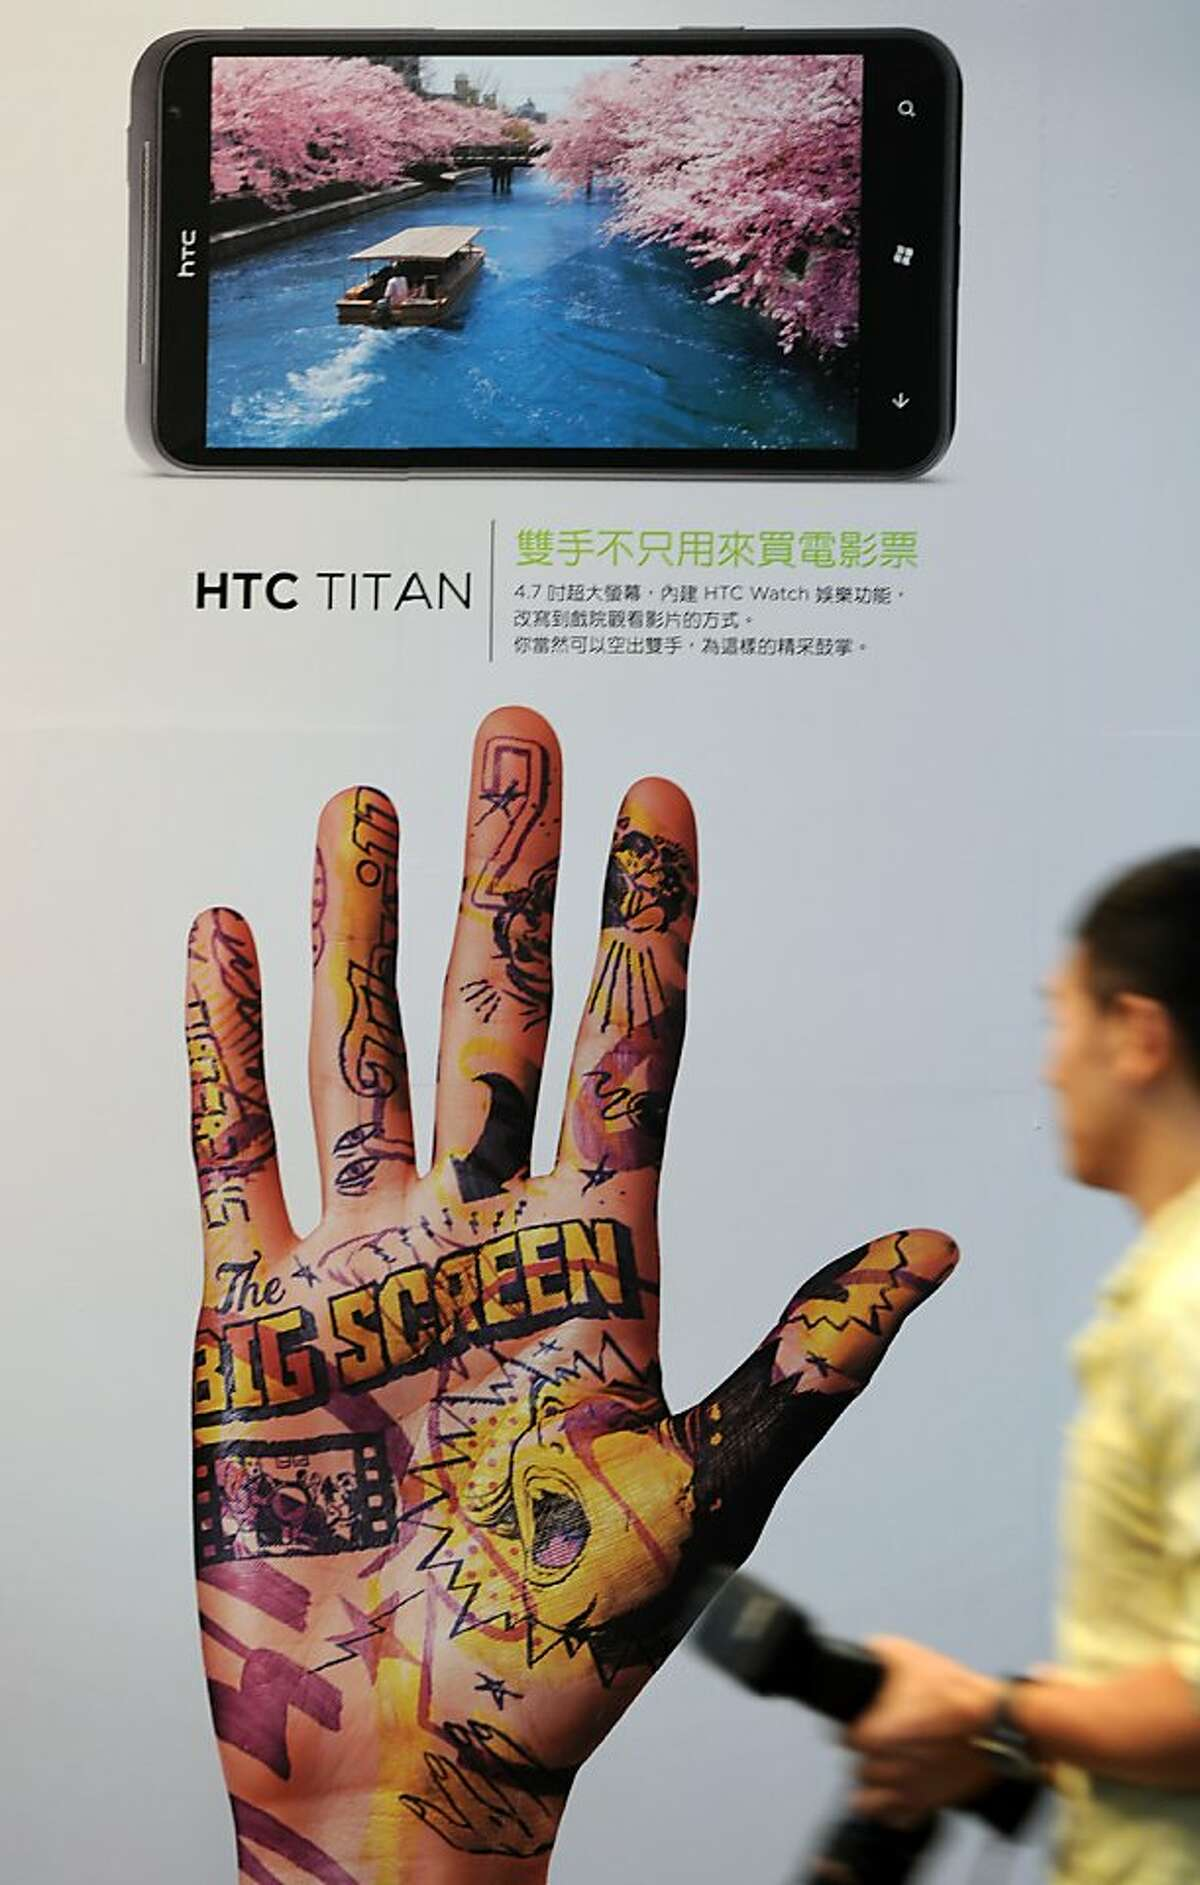 A man walks past a poster showing the latest HTC smartphone